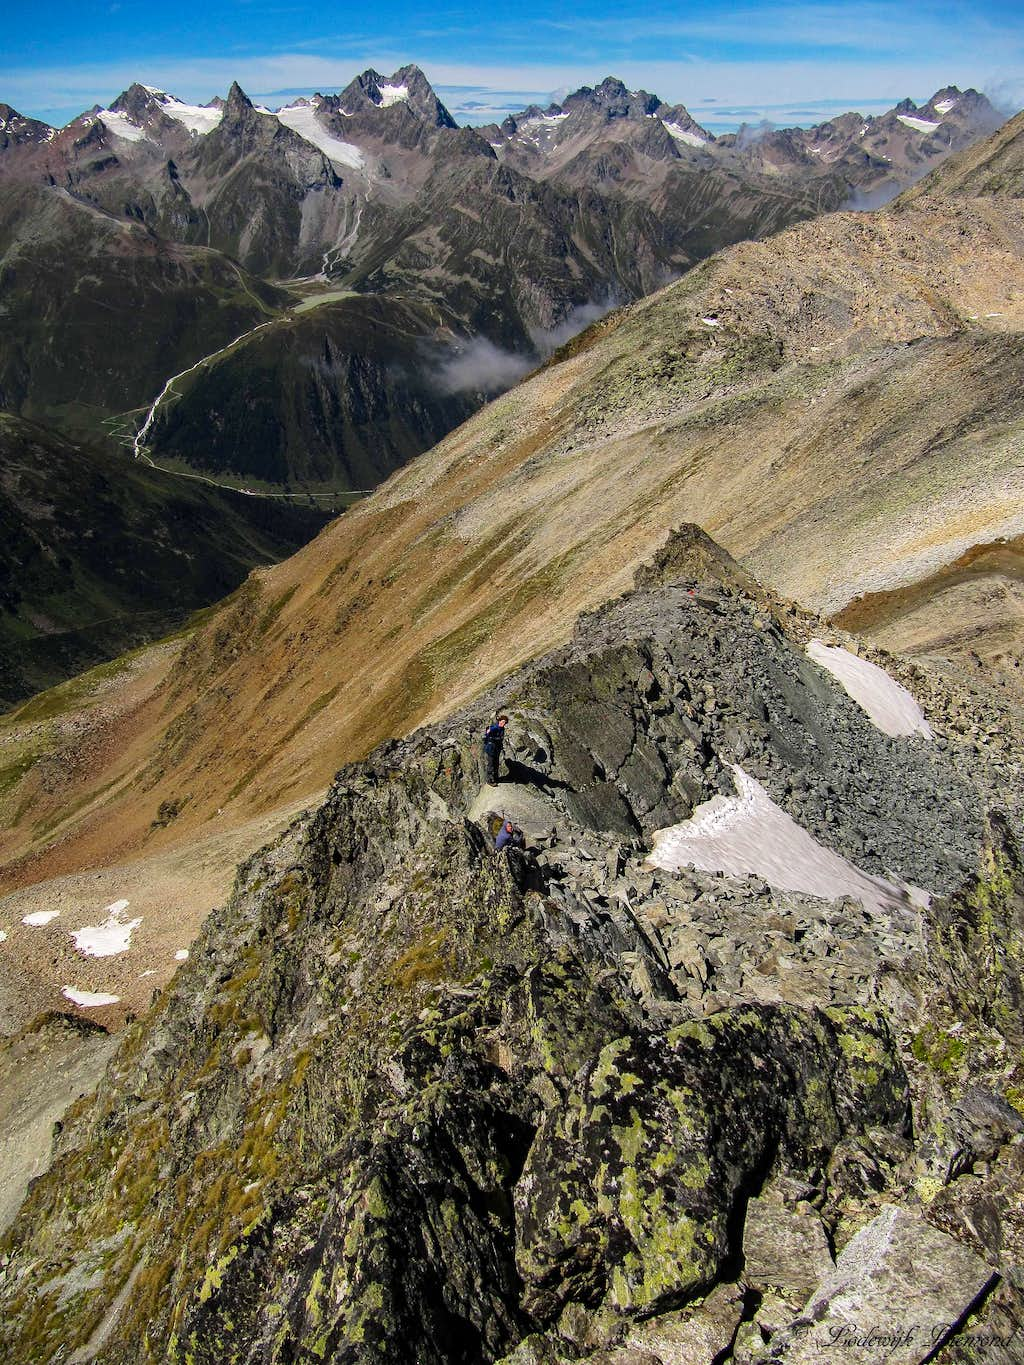 Kaunergrat as seen from Sudlicher Polleskogel (3035m) with Pieter en Maarten below